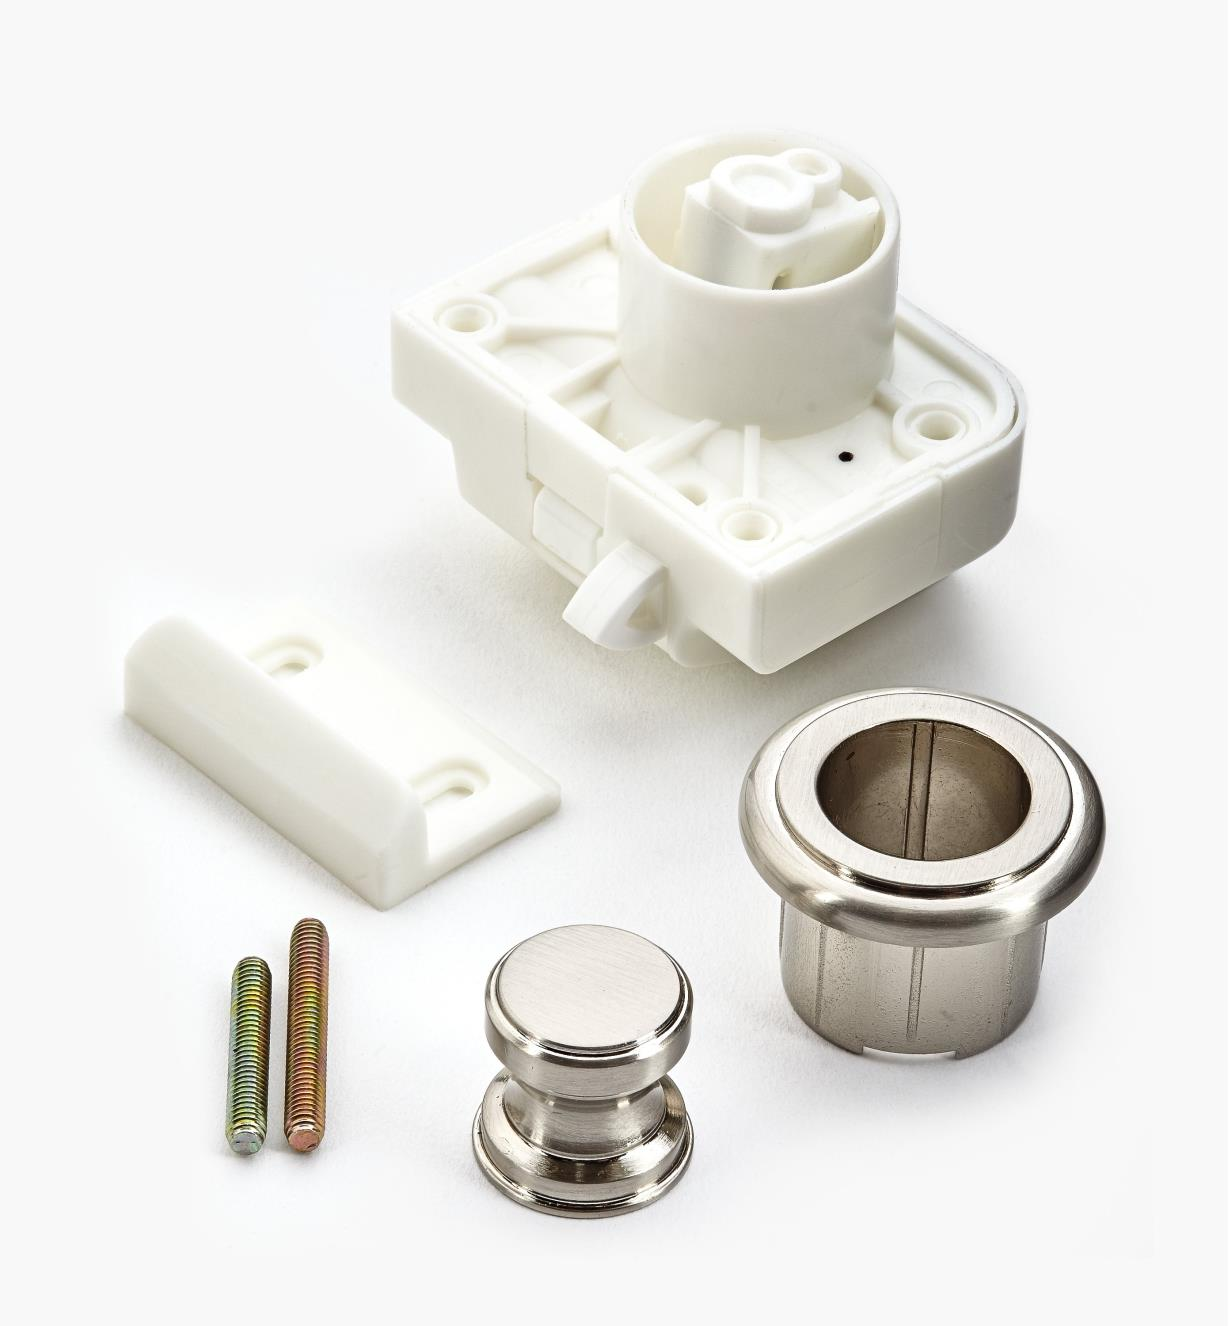 00S3212 - Satin Nickel Push Knob/Catch